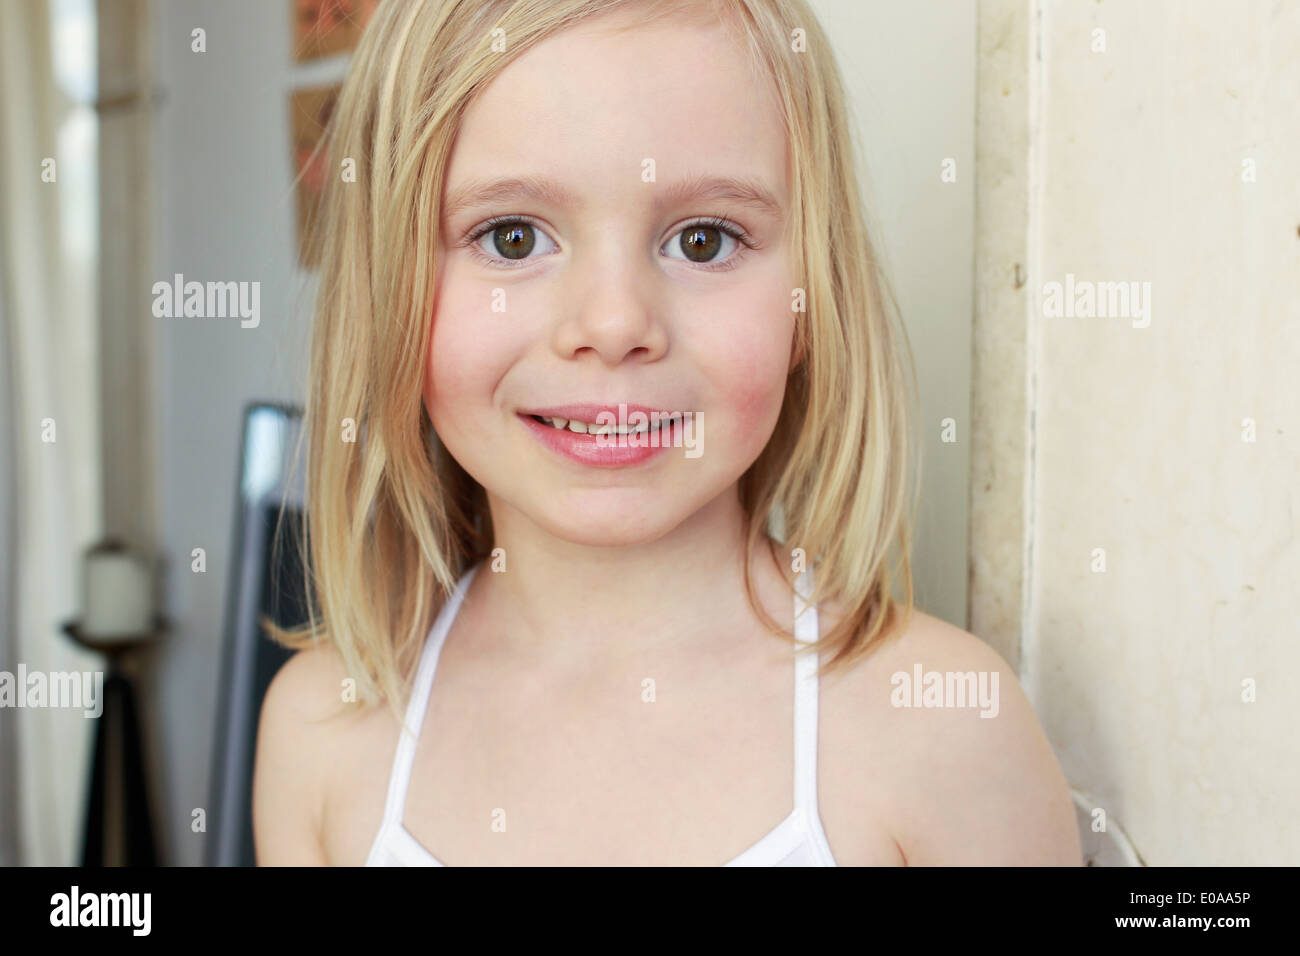 Portrait of innocent young girl in corridor - Stock Image